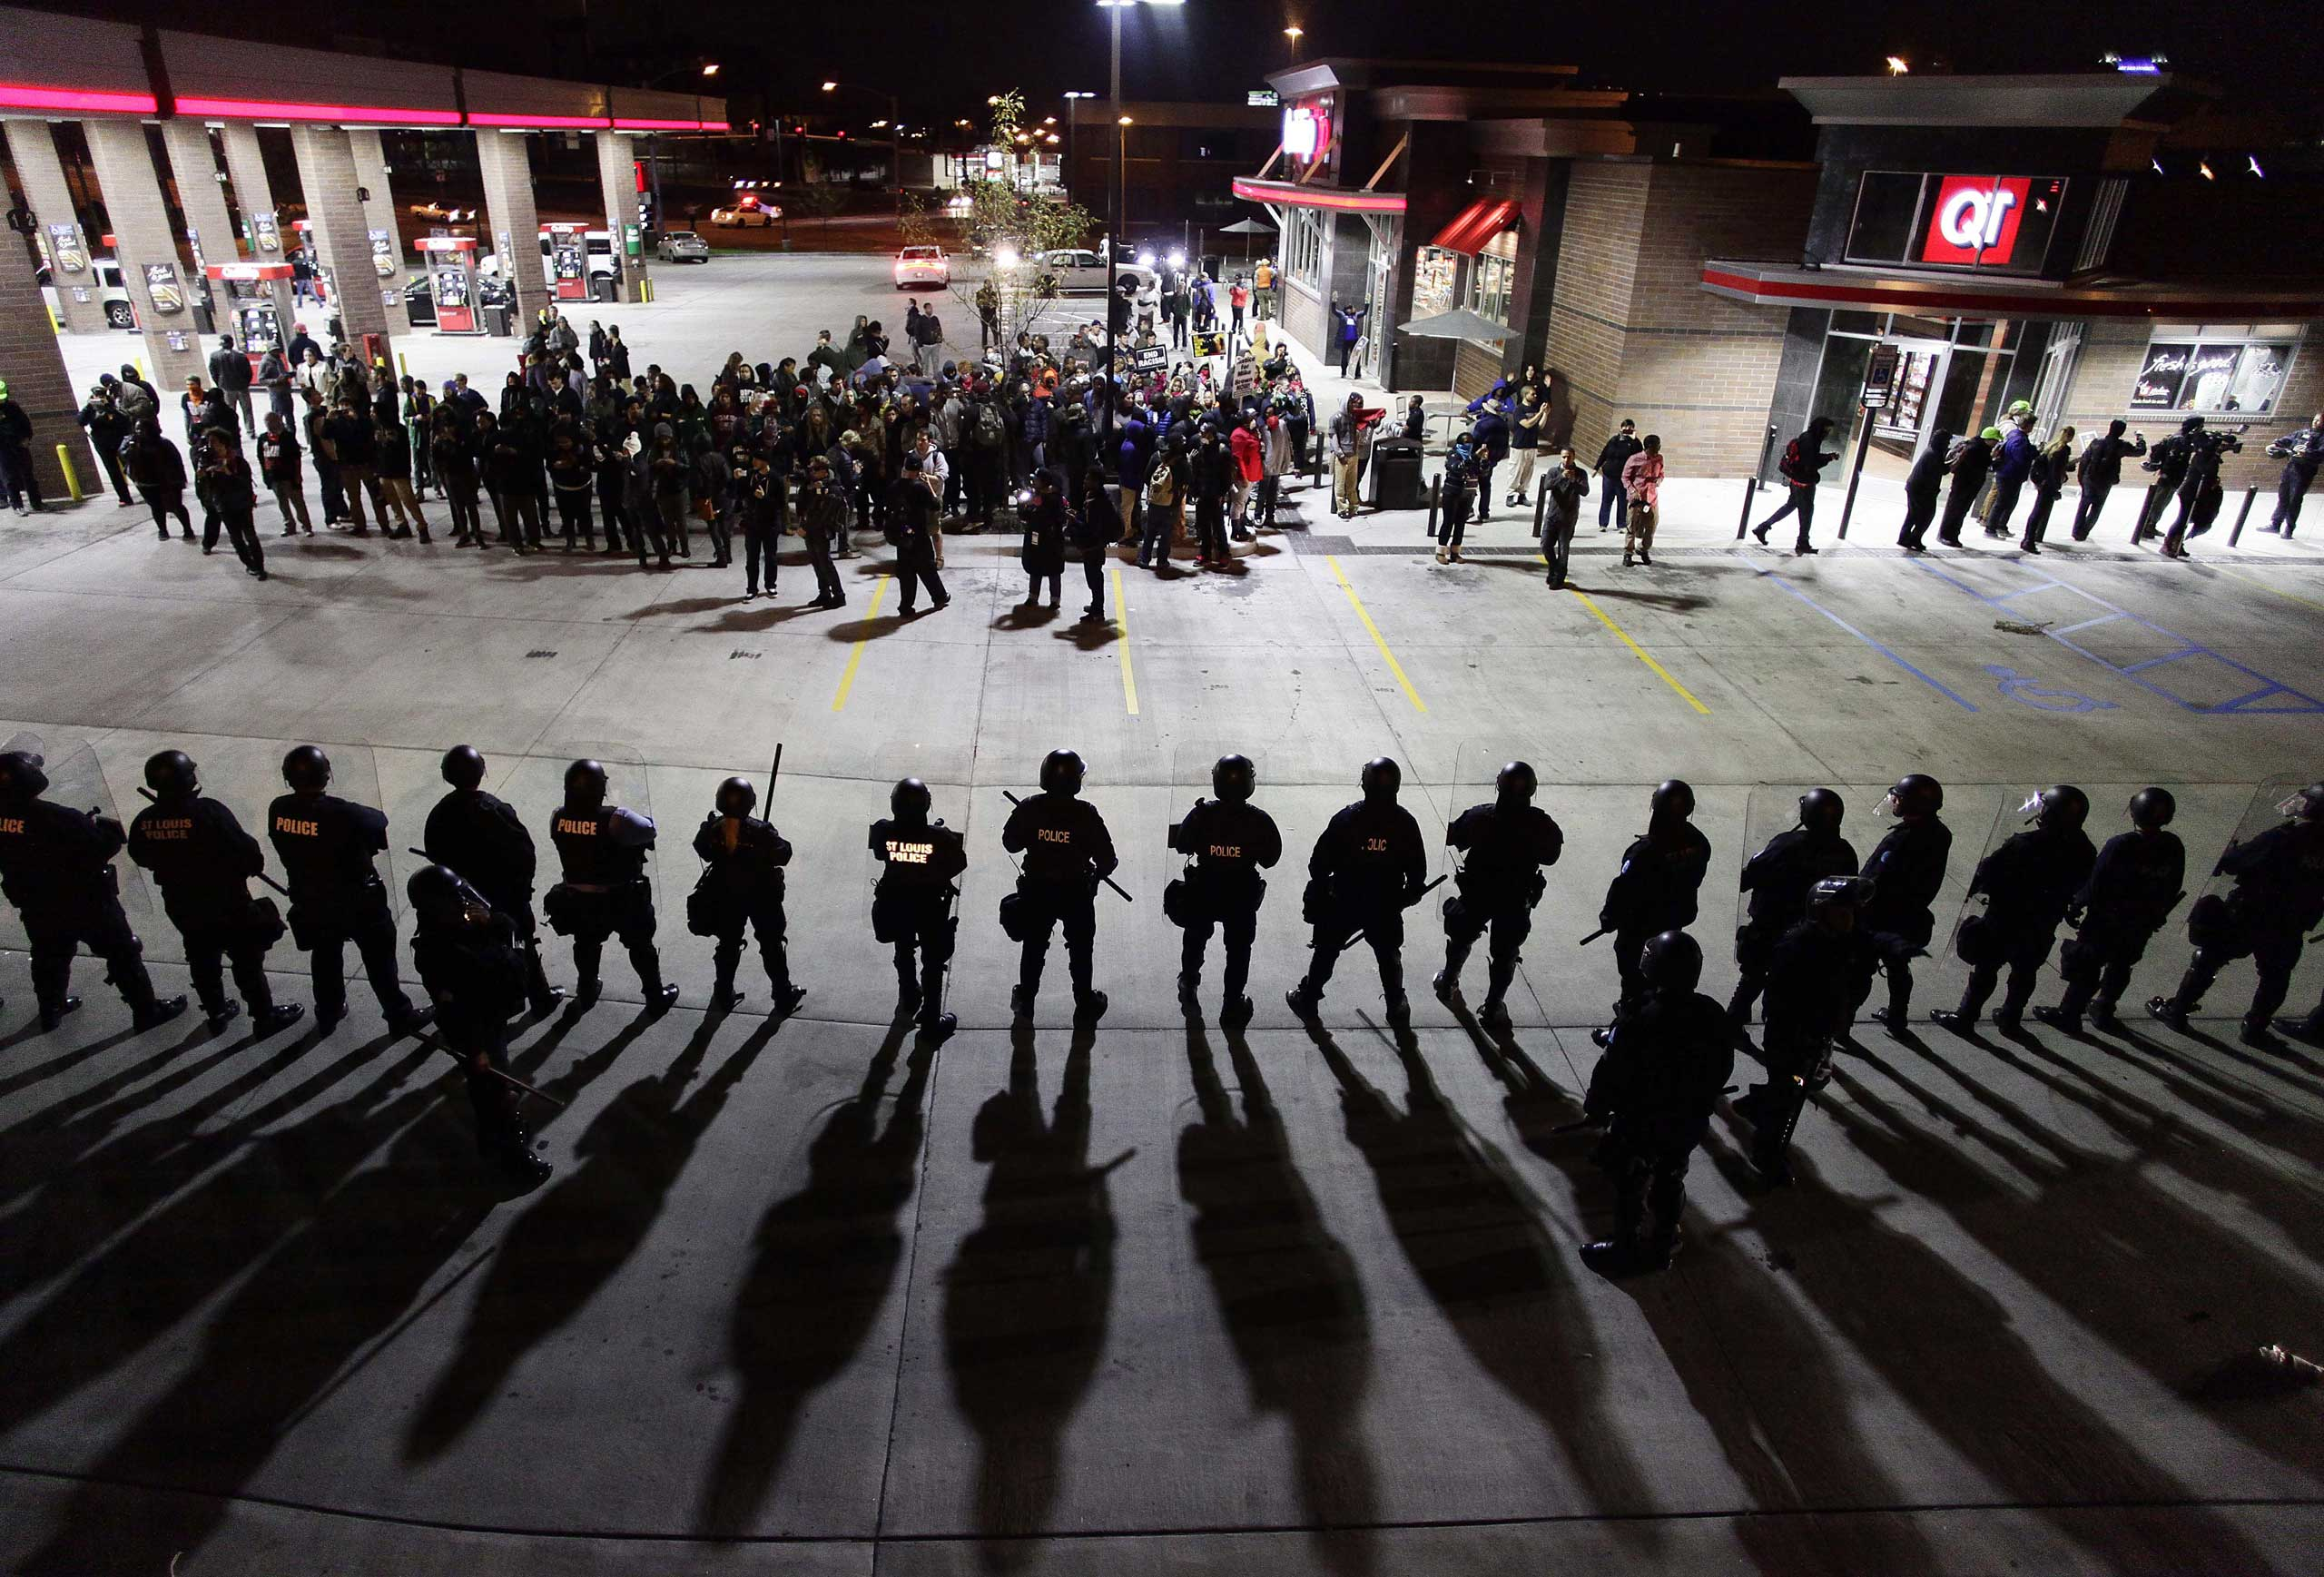 Police officers in riot gear hold a line as they watch demonstrators protest in St. Louis on Oct. 12, 2014.